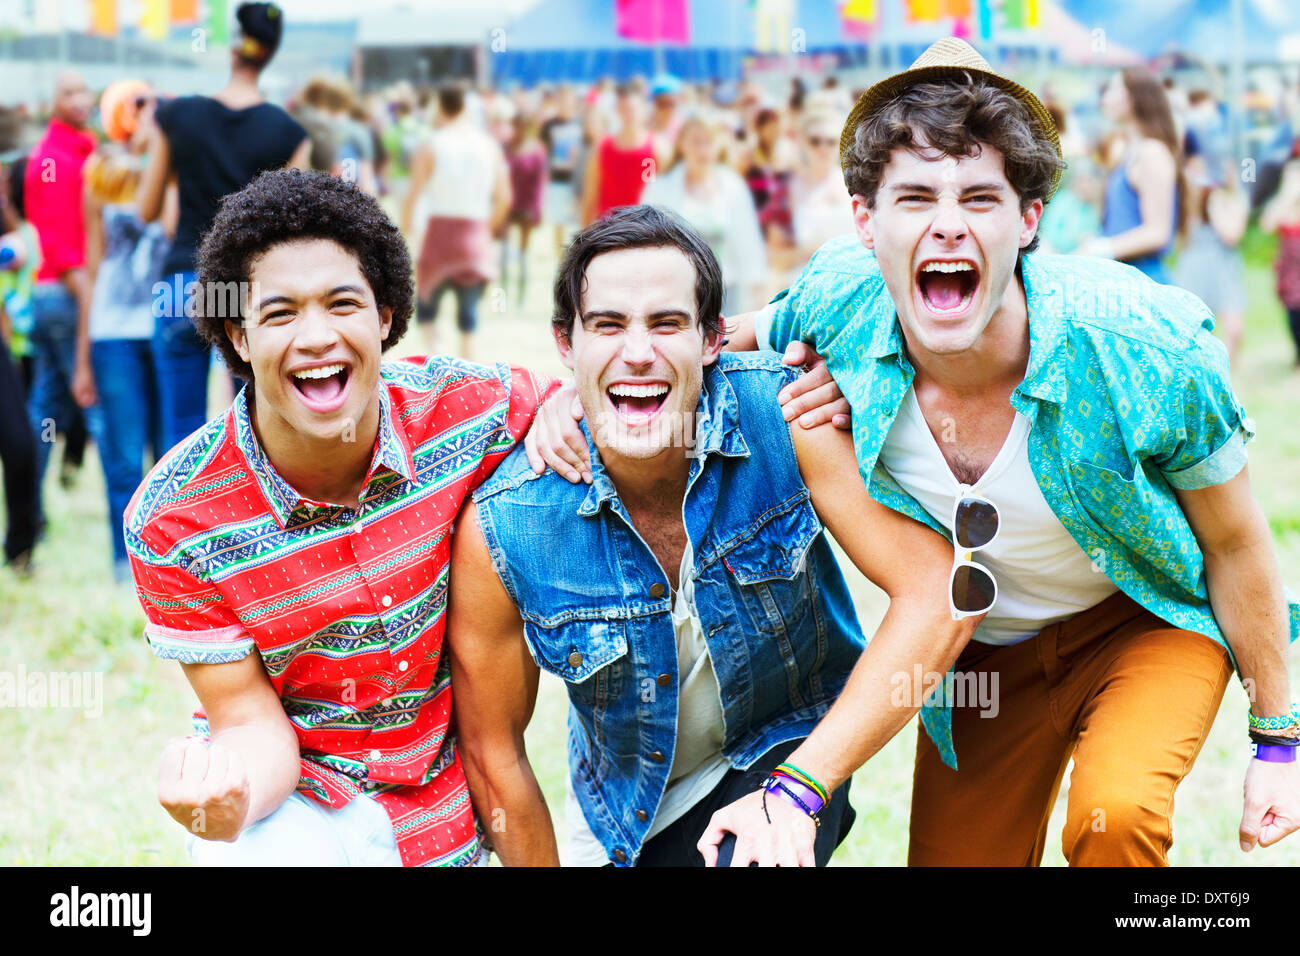 Enthusiastic men cheering at music festival - Stock Image